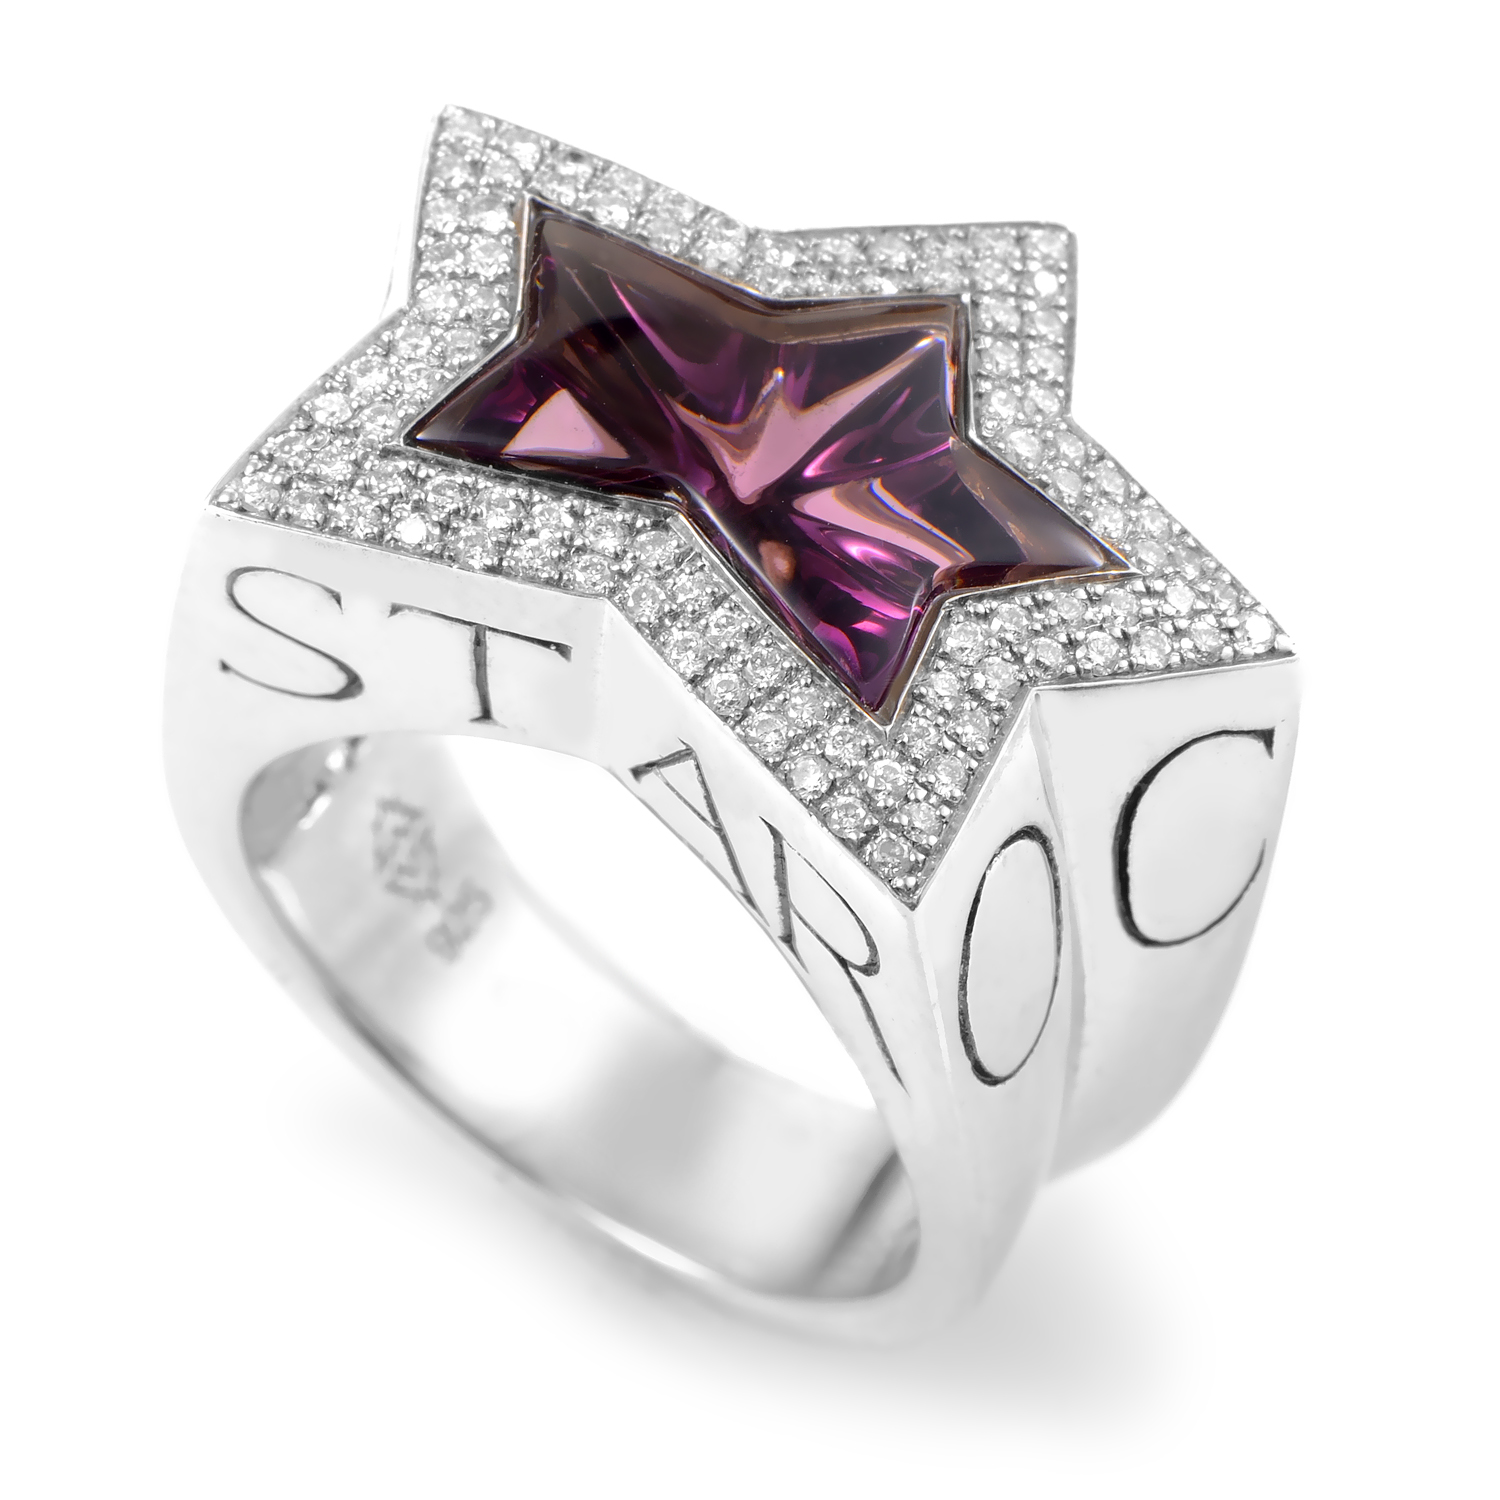 Rockstar Sterling Silver Diamond & Amethyst Ring